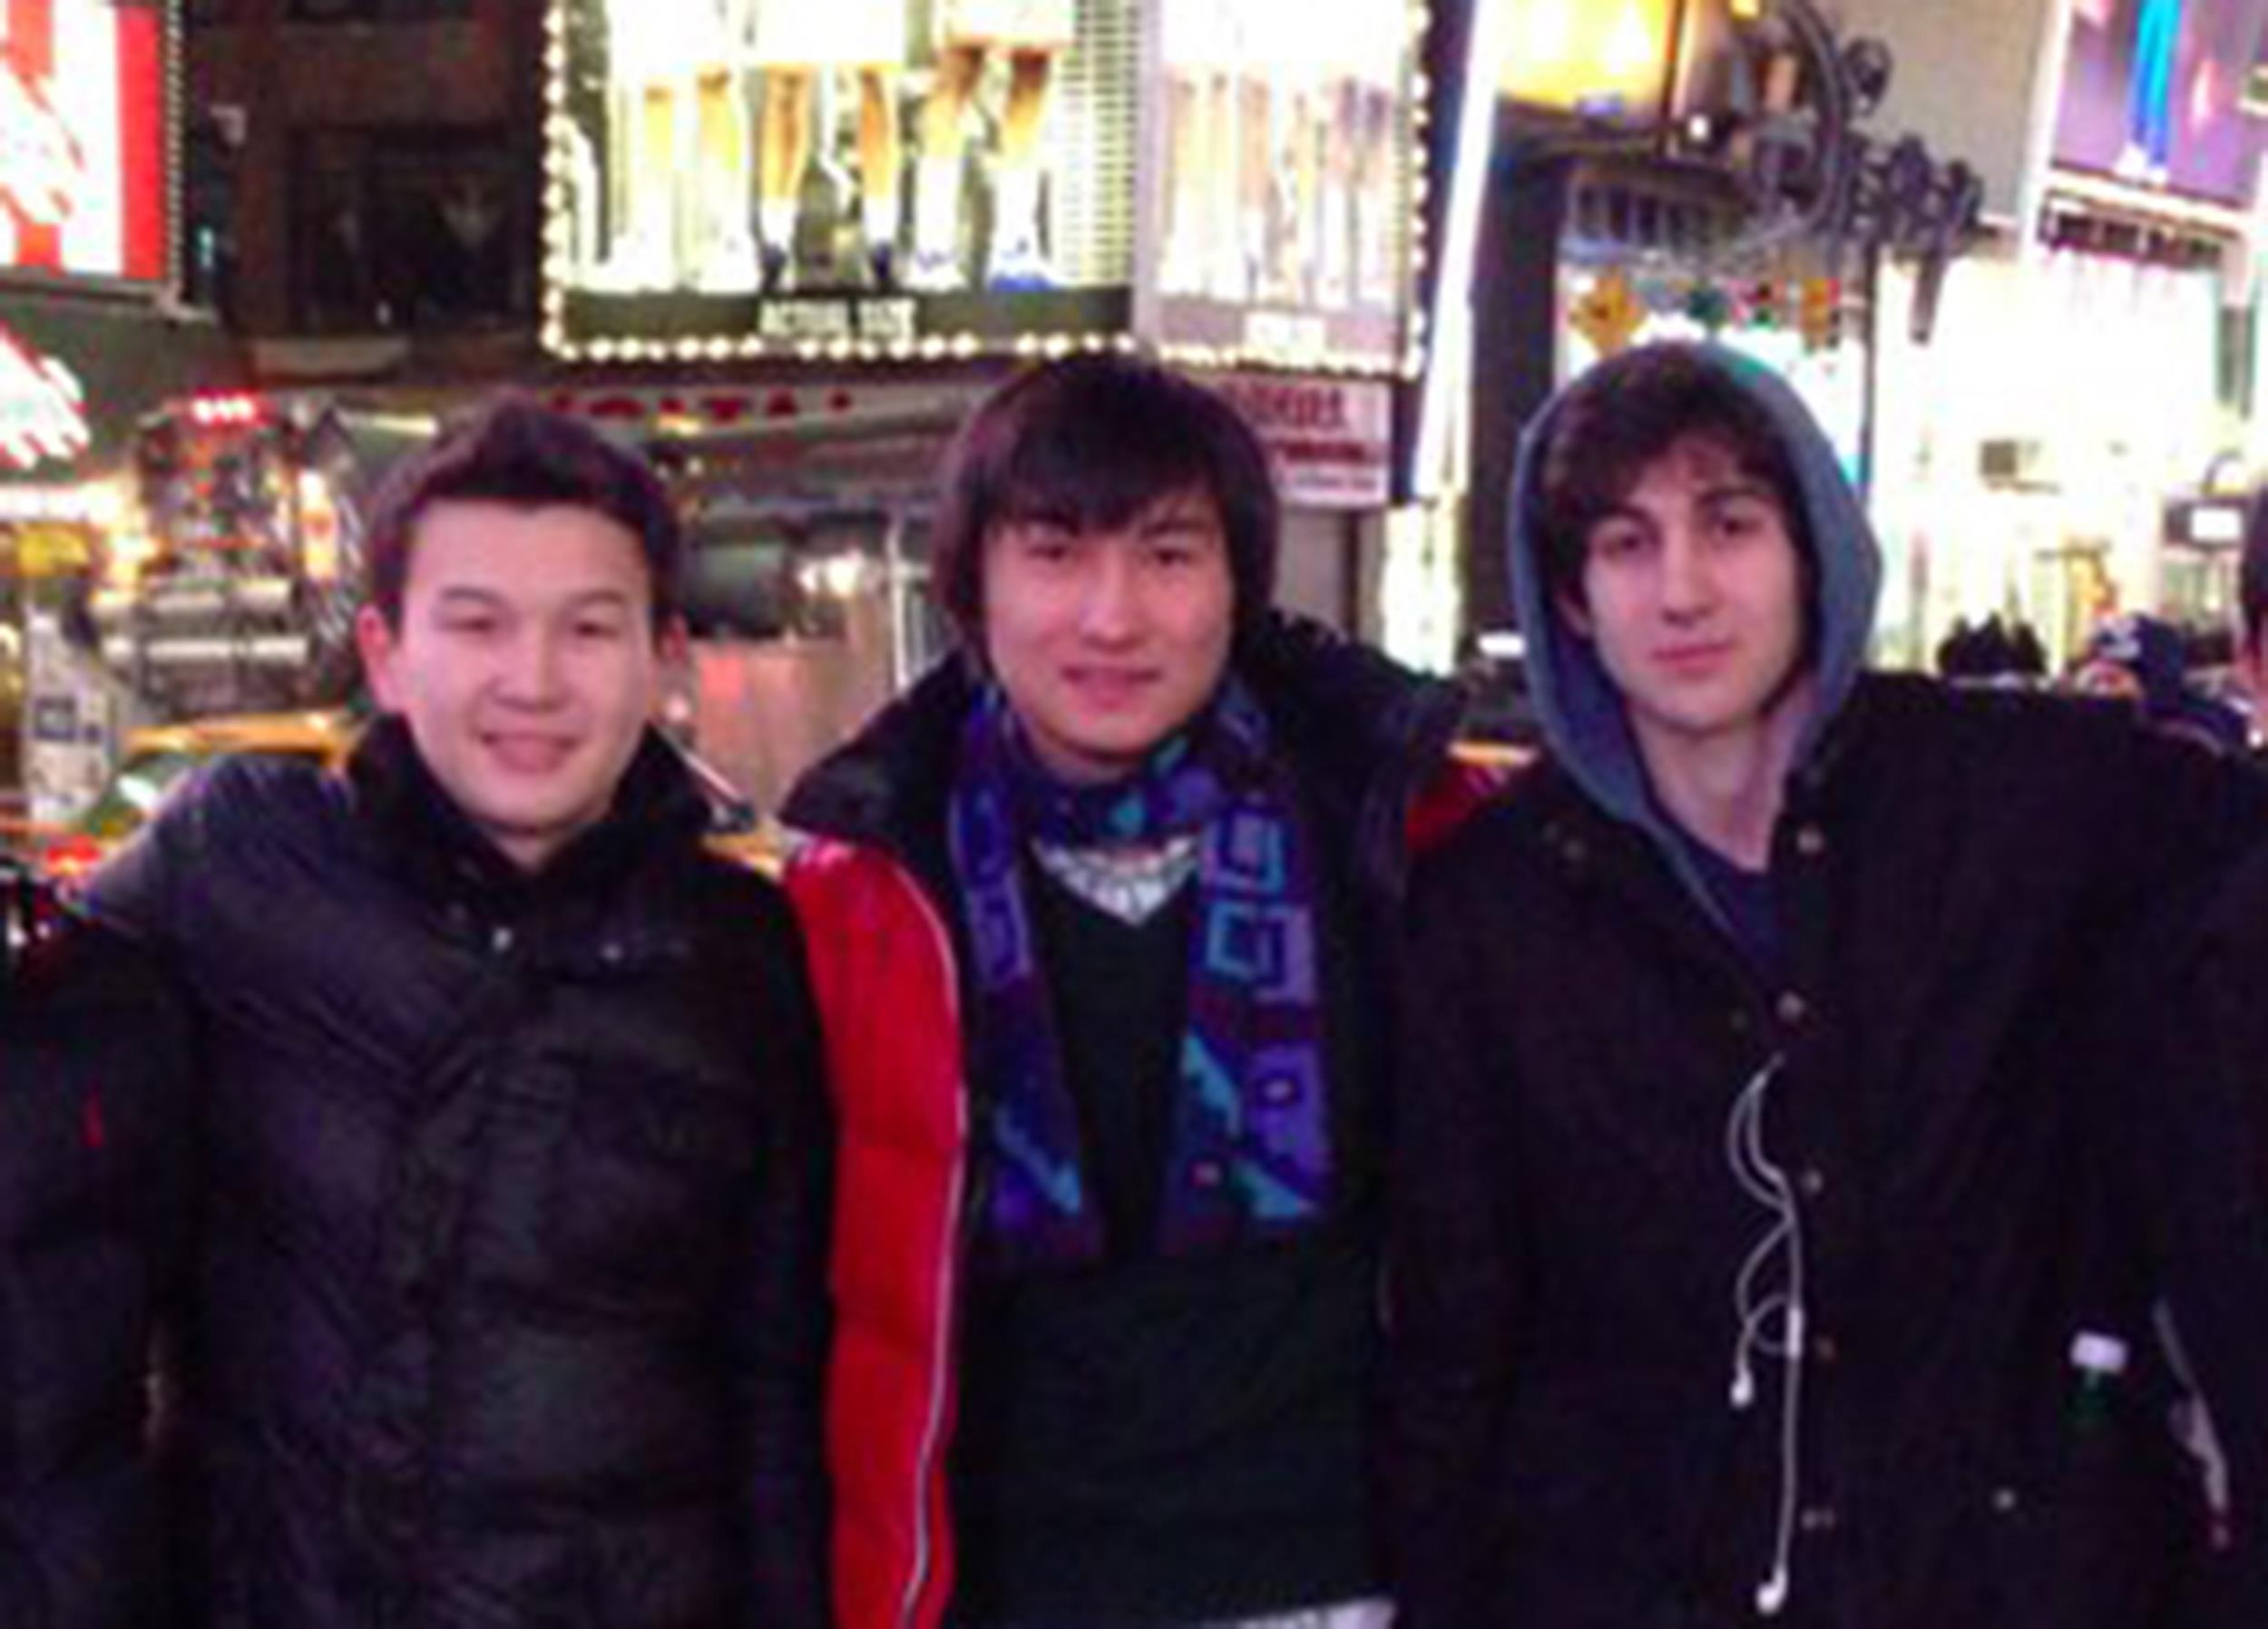 Image: Tsarnaev poses with Tazhayakov and Kadyrbayev in an undated photo taken in New York